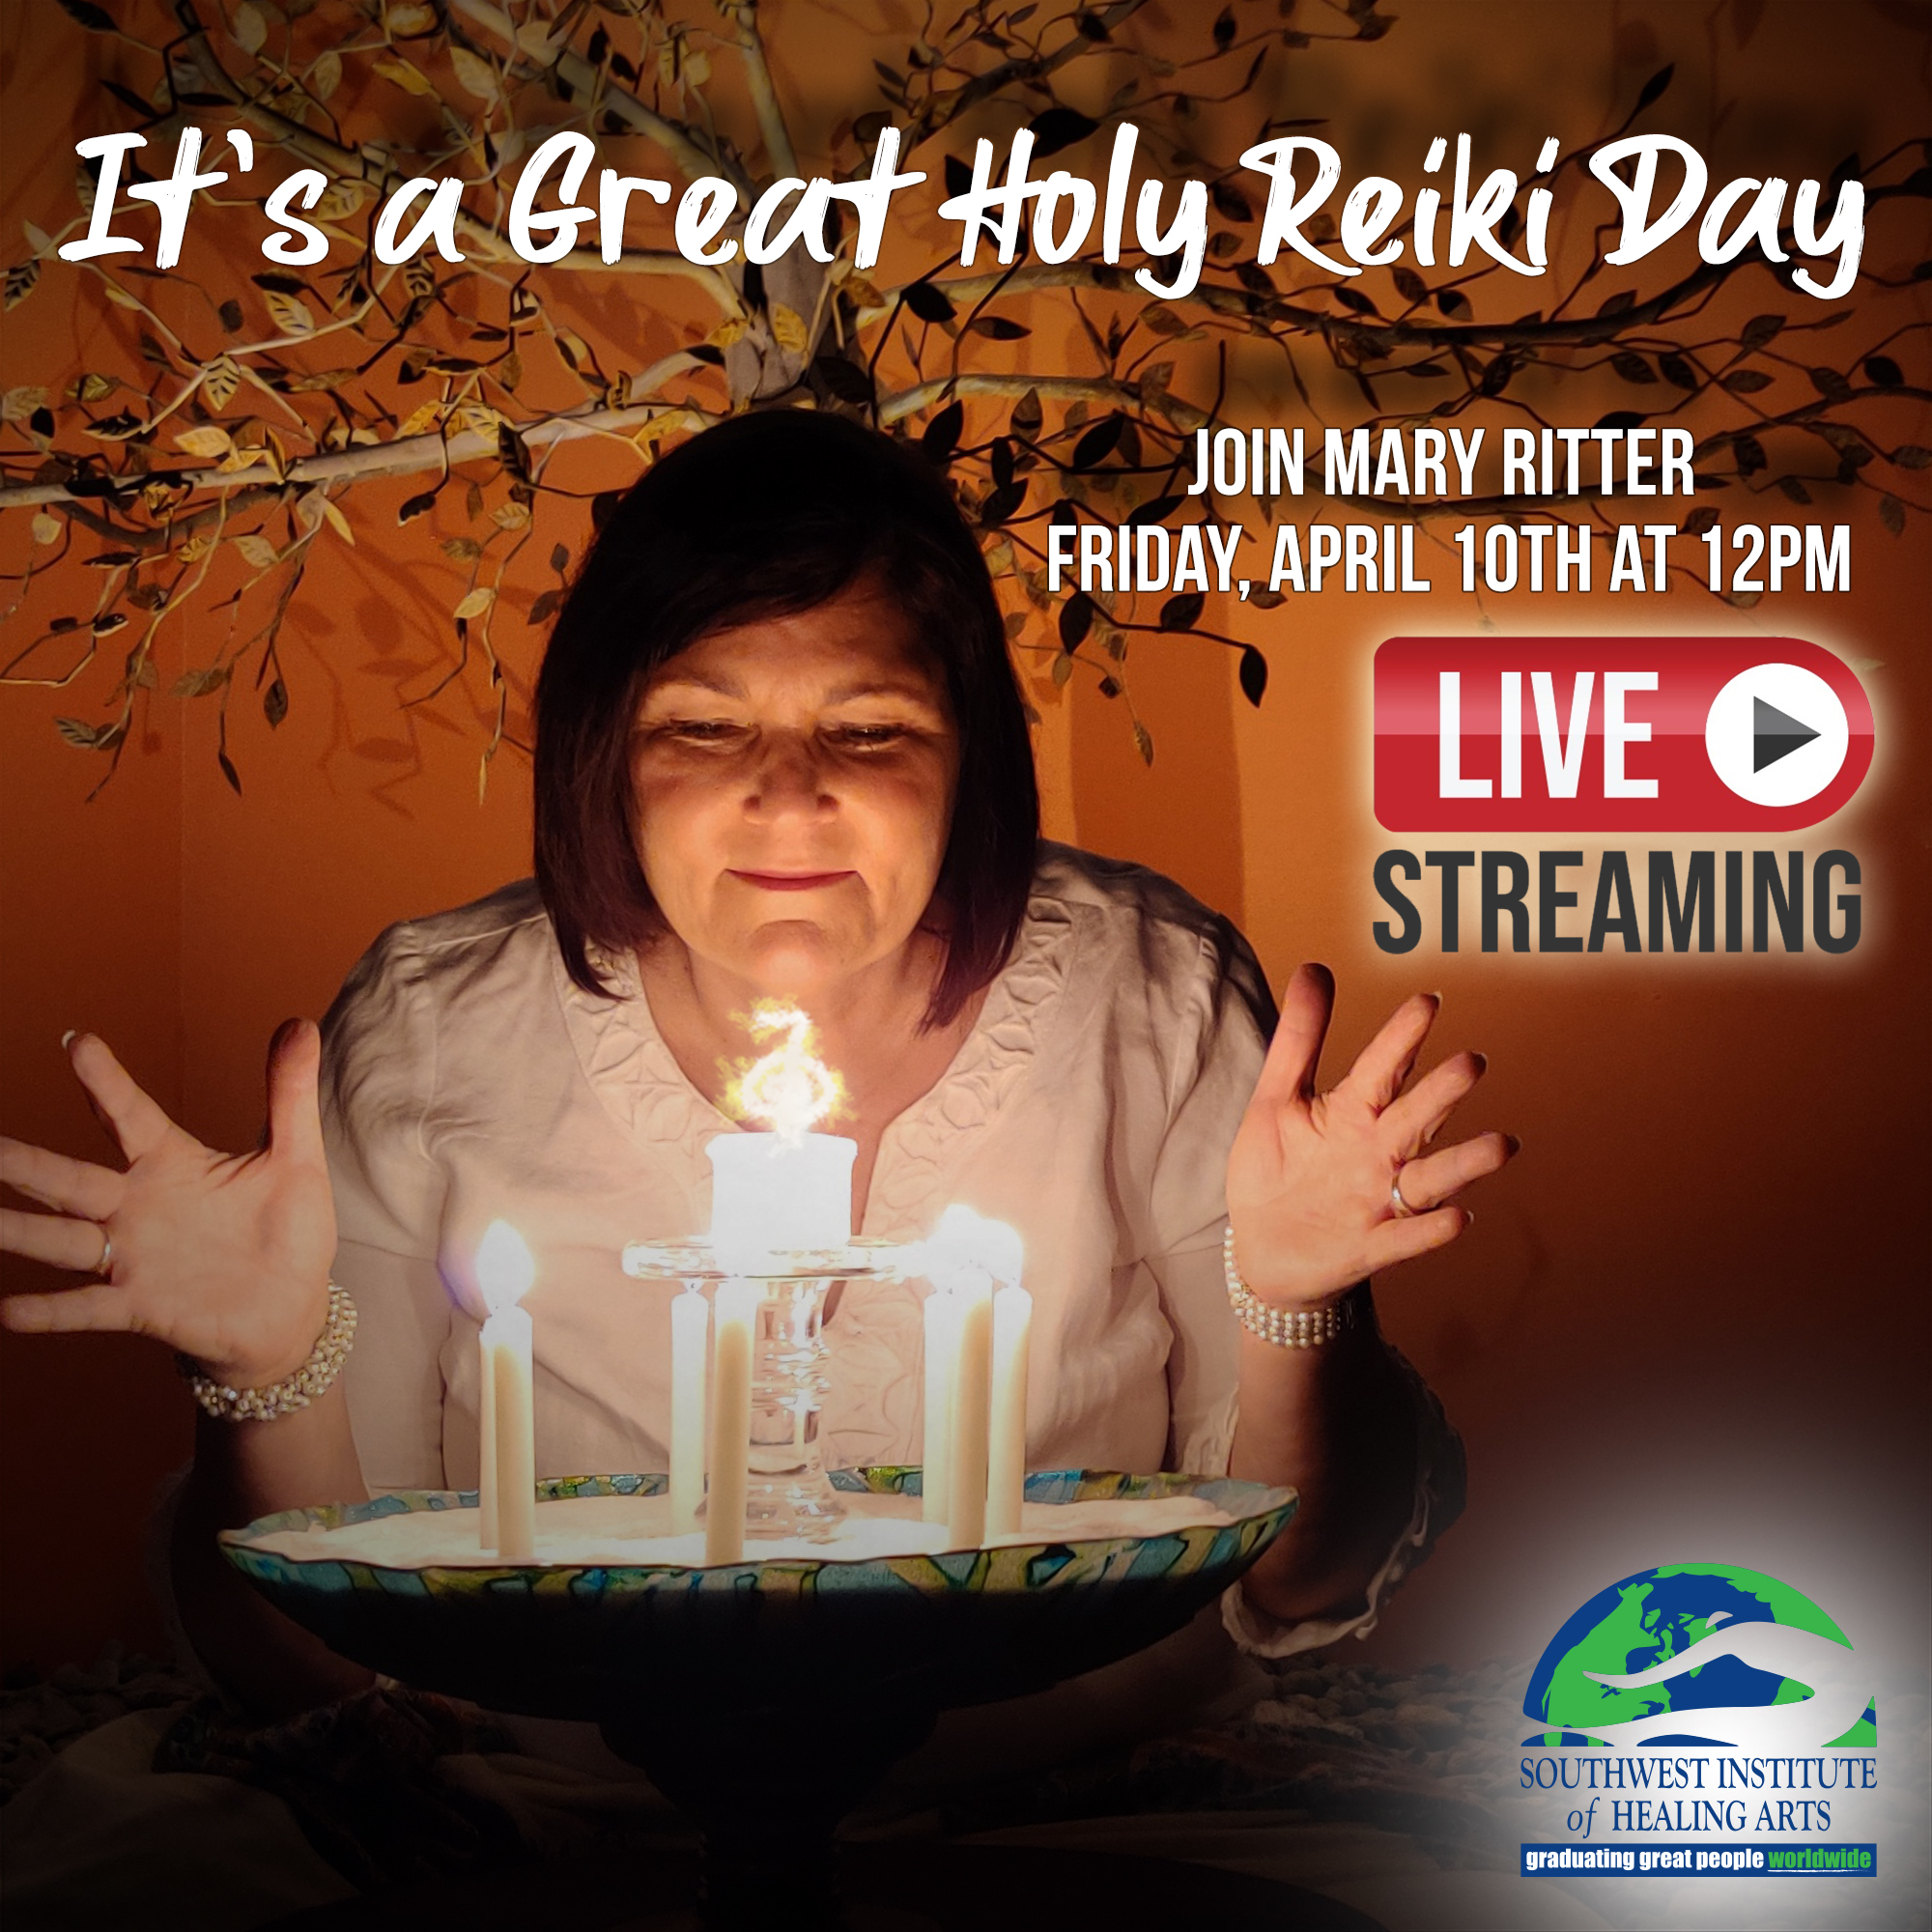 Its-a-great-day-holy-reiki-2